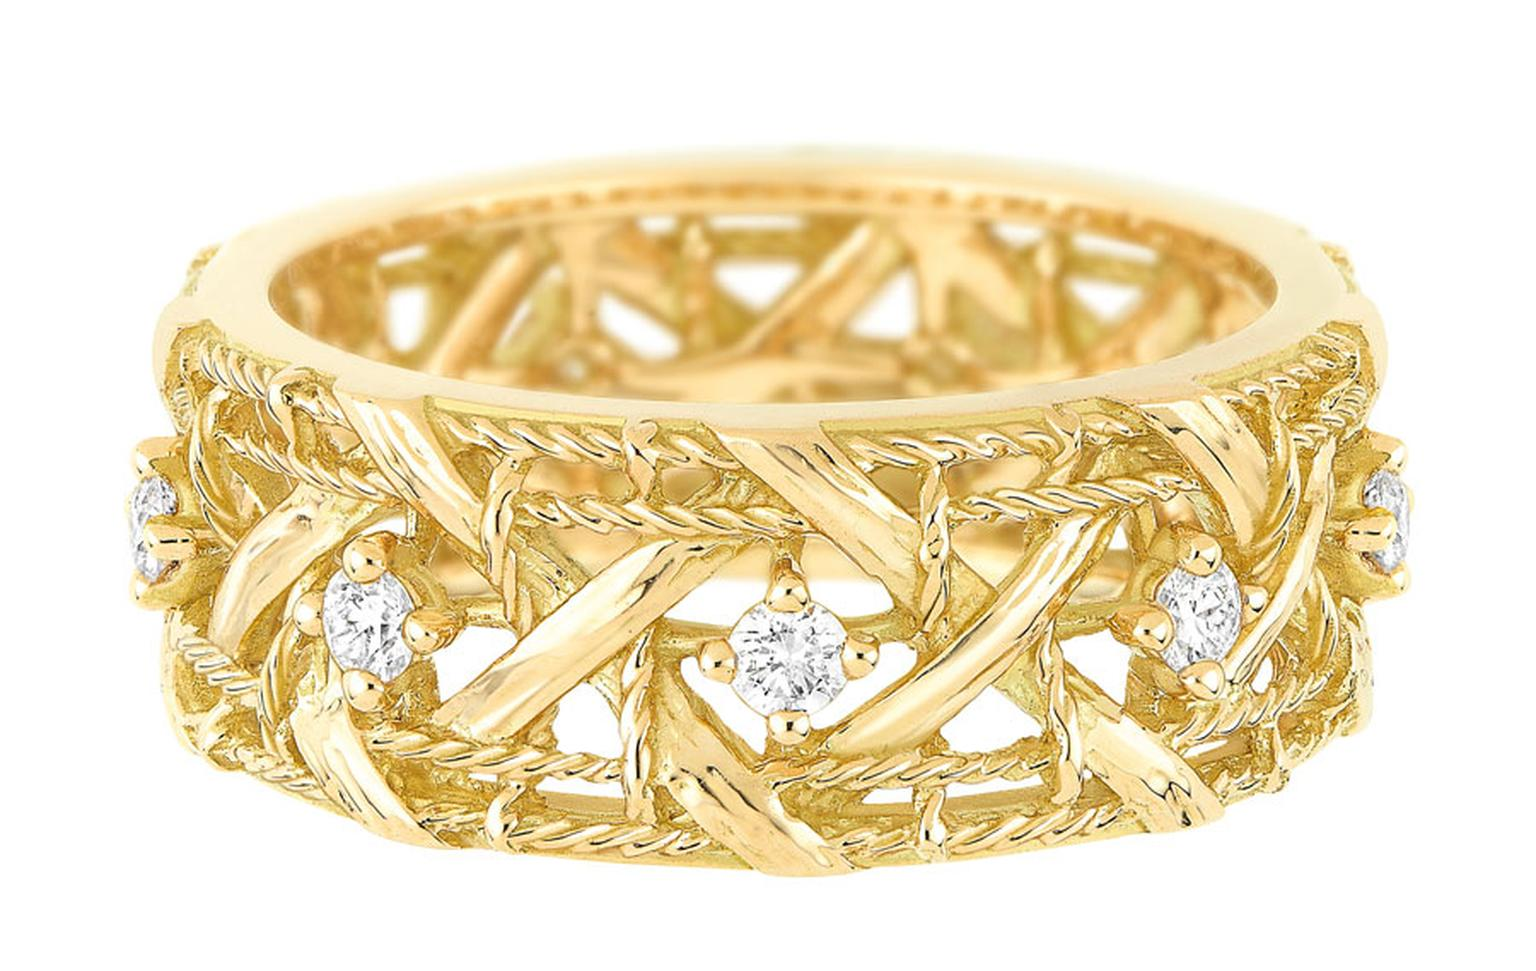 Dior-MY-DIOR-SM-RING-YELLOW-GOLD-AND-DIAMONDS